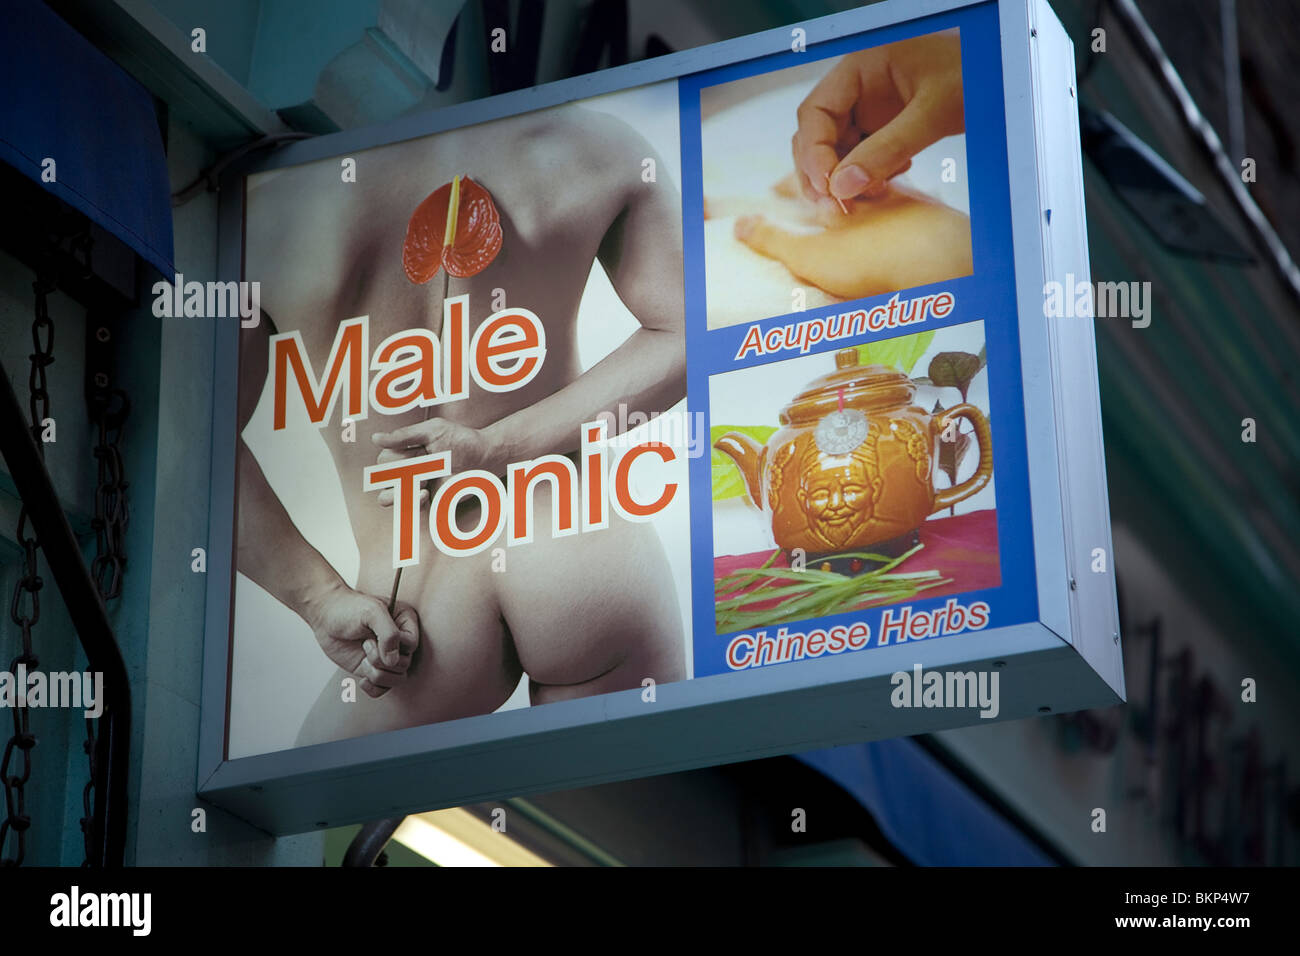 Chinese herbs acupuncture male tonic sign, Wardour Street, Soho, London, England - Stock Image